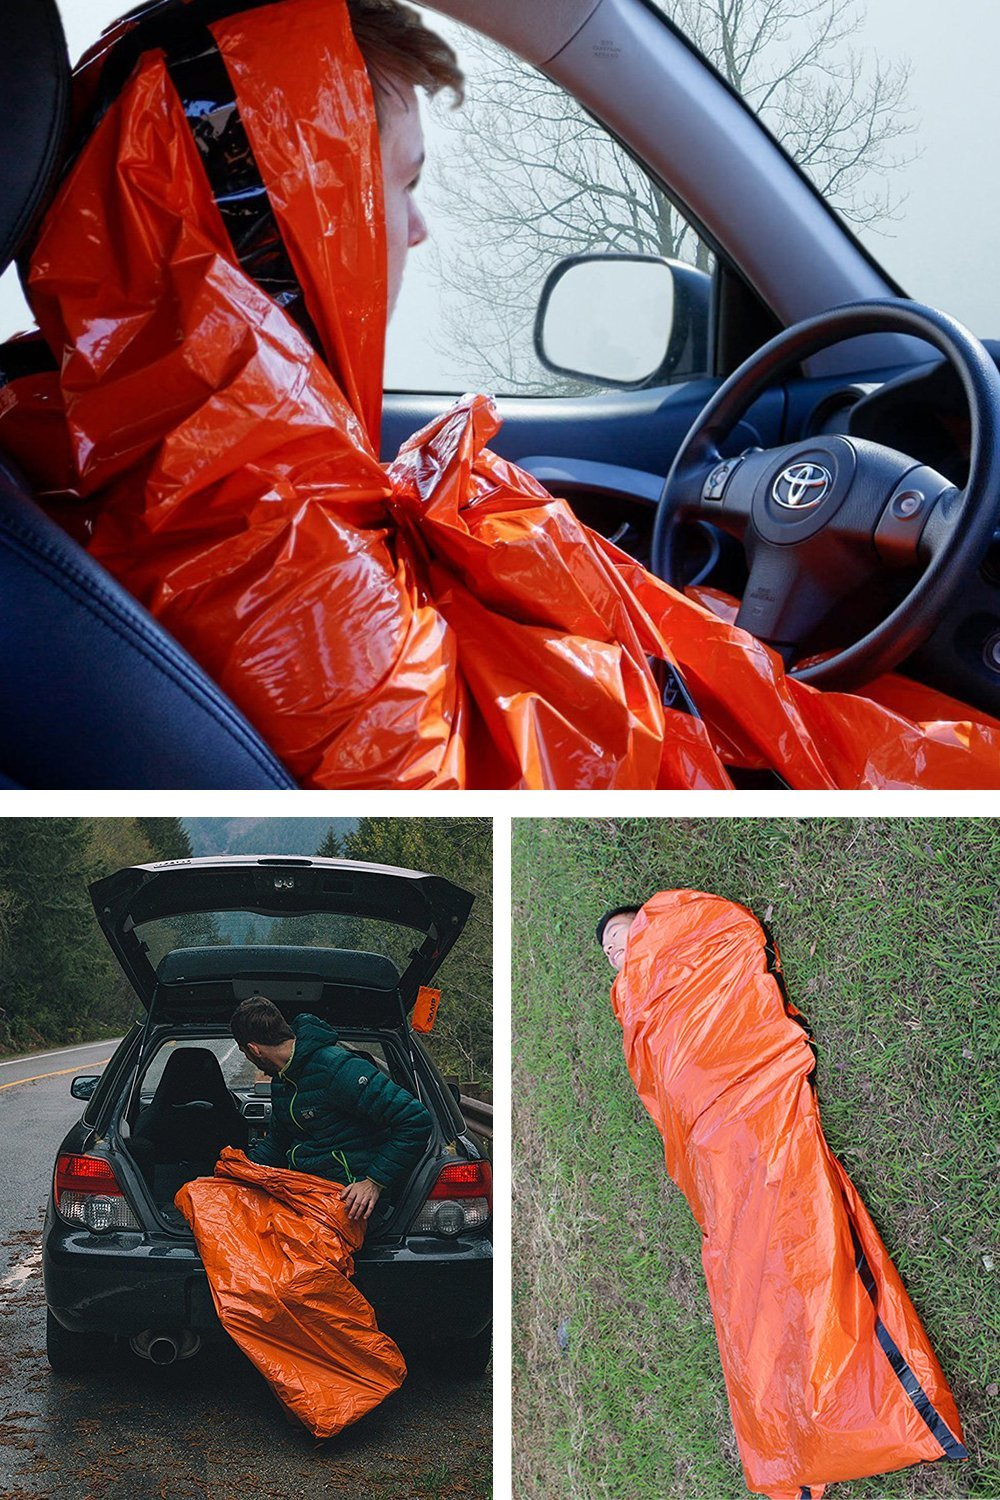 VEY Emergency Sleeping Bag Survival Bivy Bag PE Aluminum Film for Outdoor Camping and Hiking